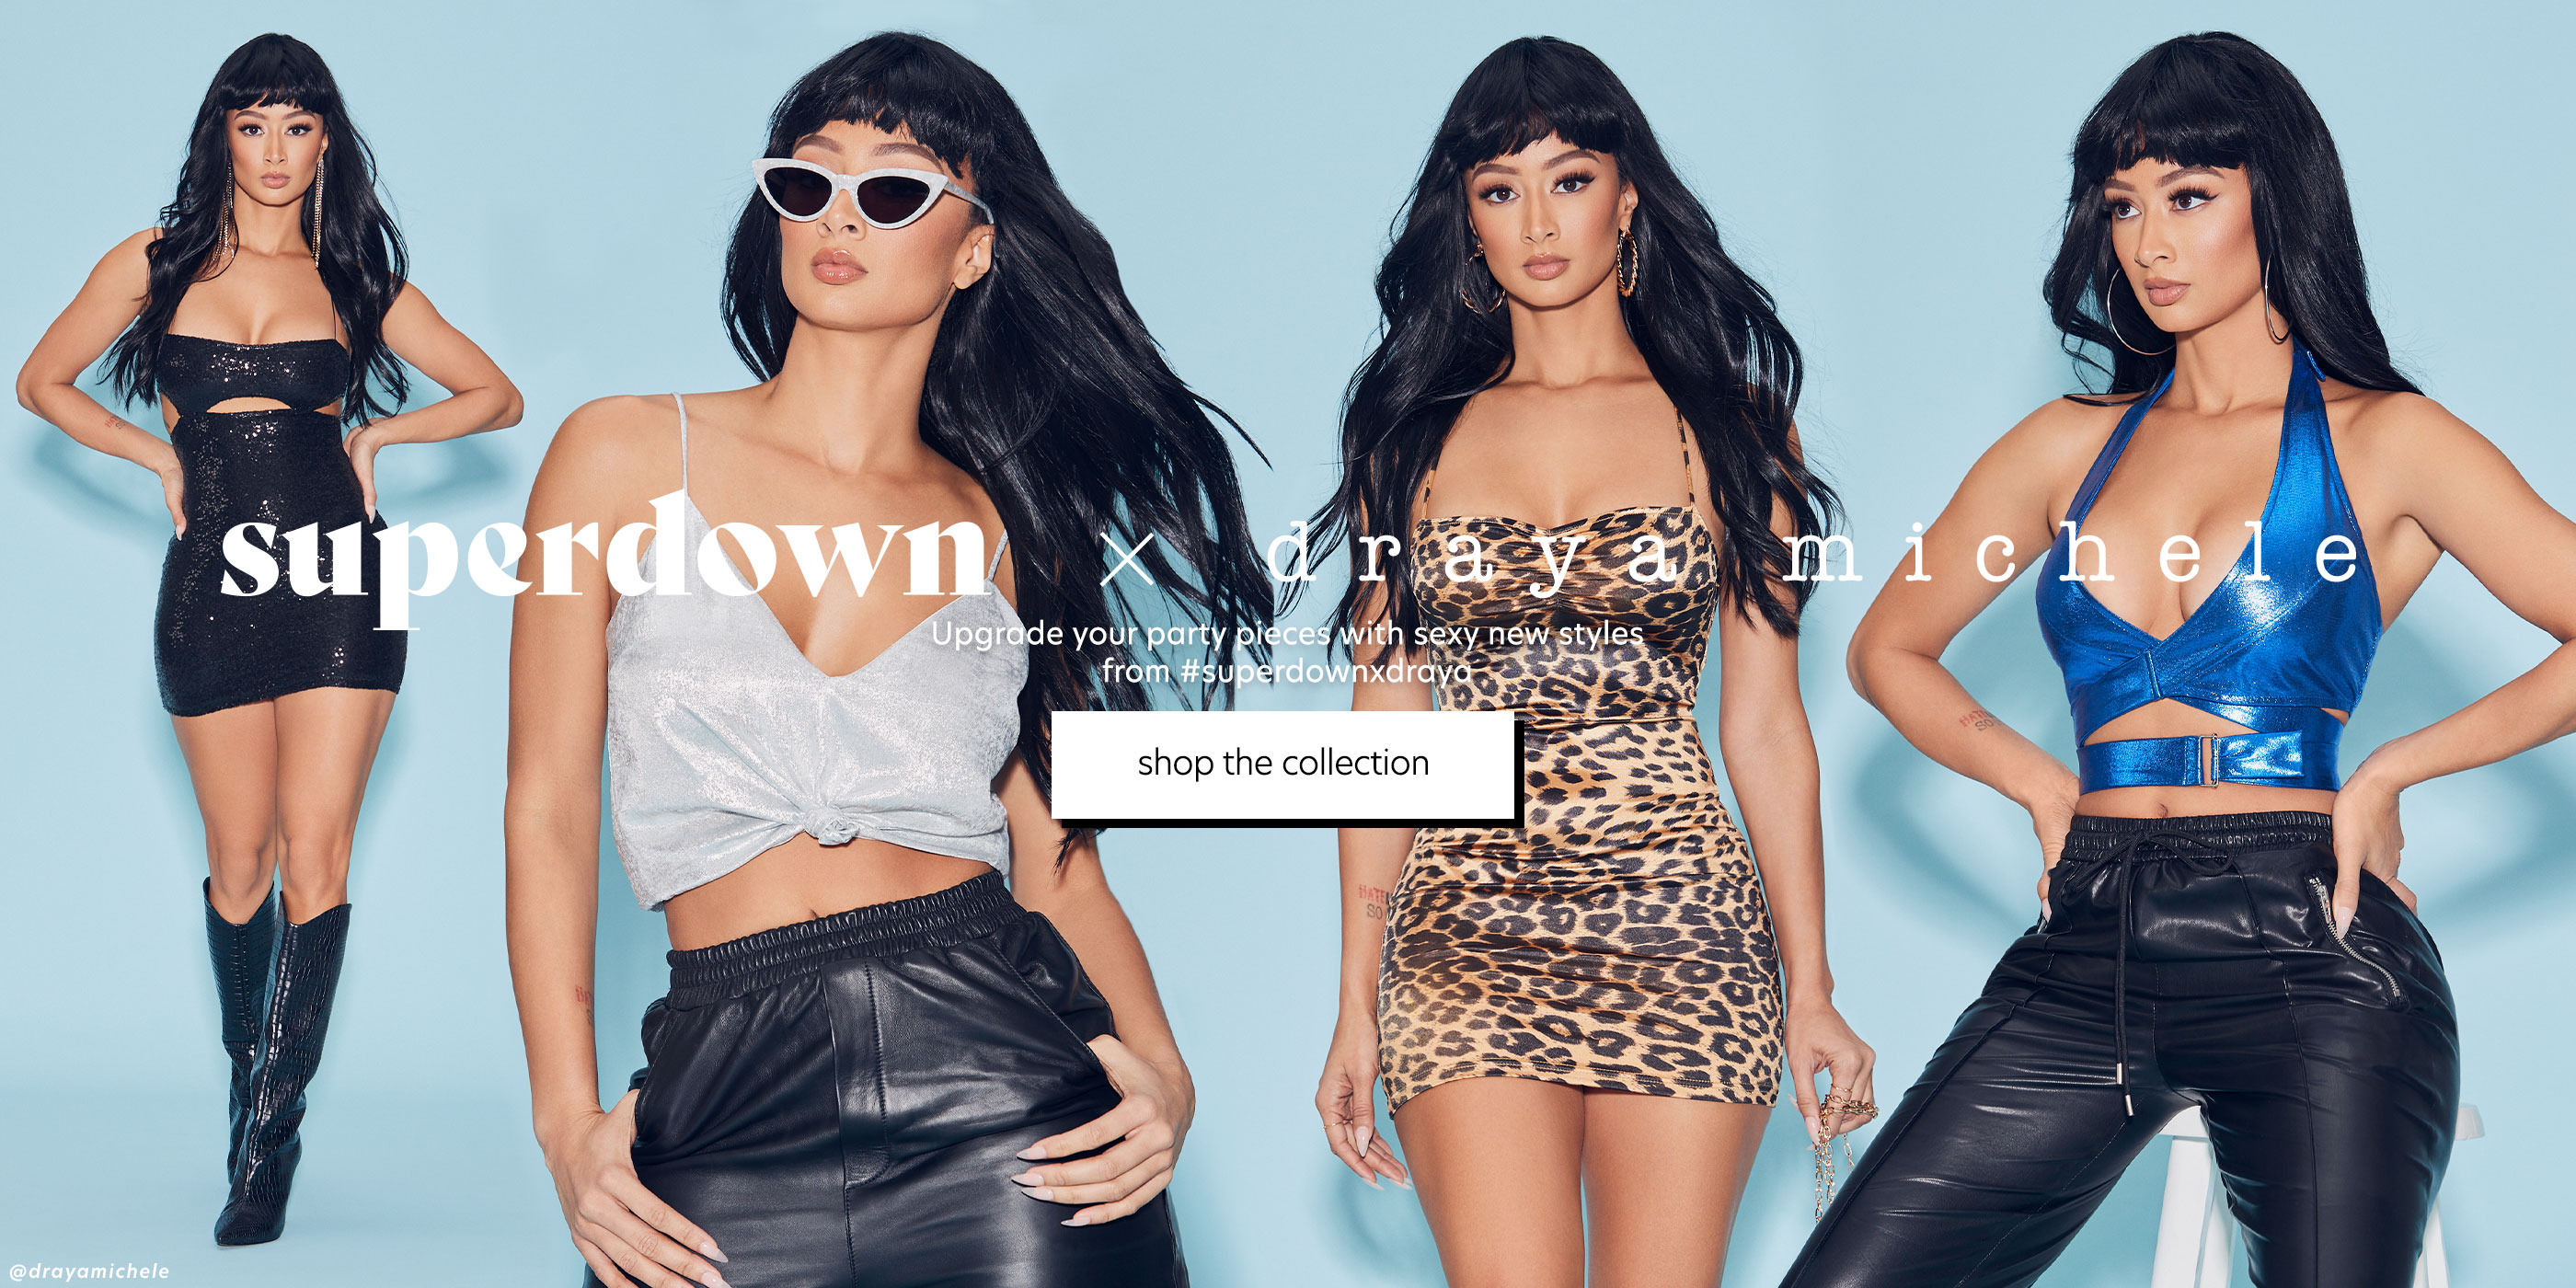 superdown x draya michele. Upgrade your party pieces with sexy new styles from #superdownxdraya. Shop the Collection.